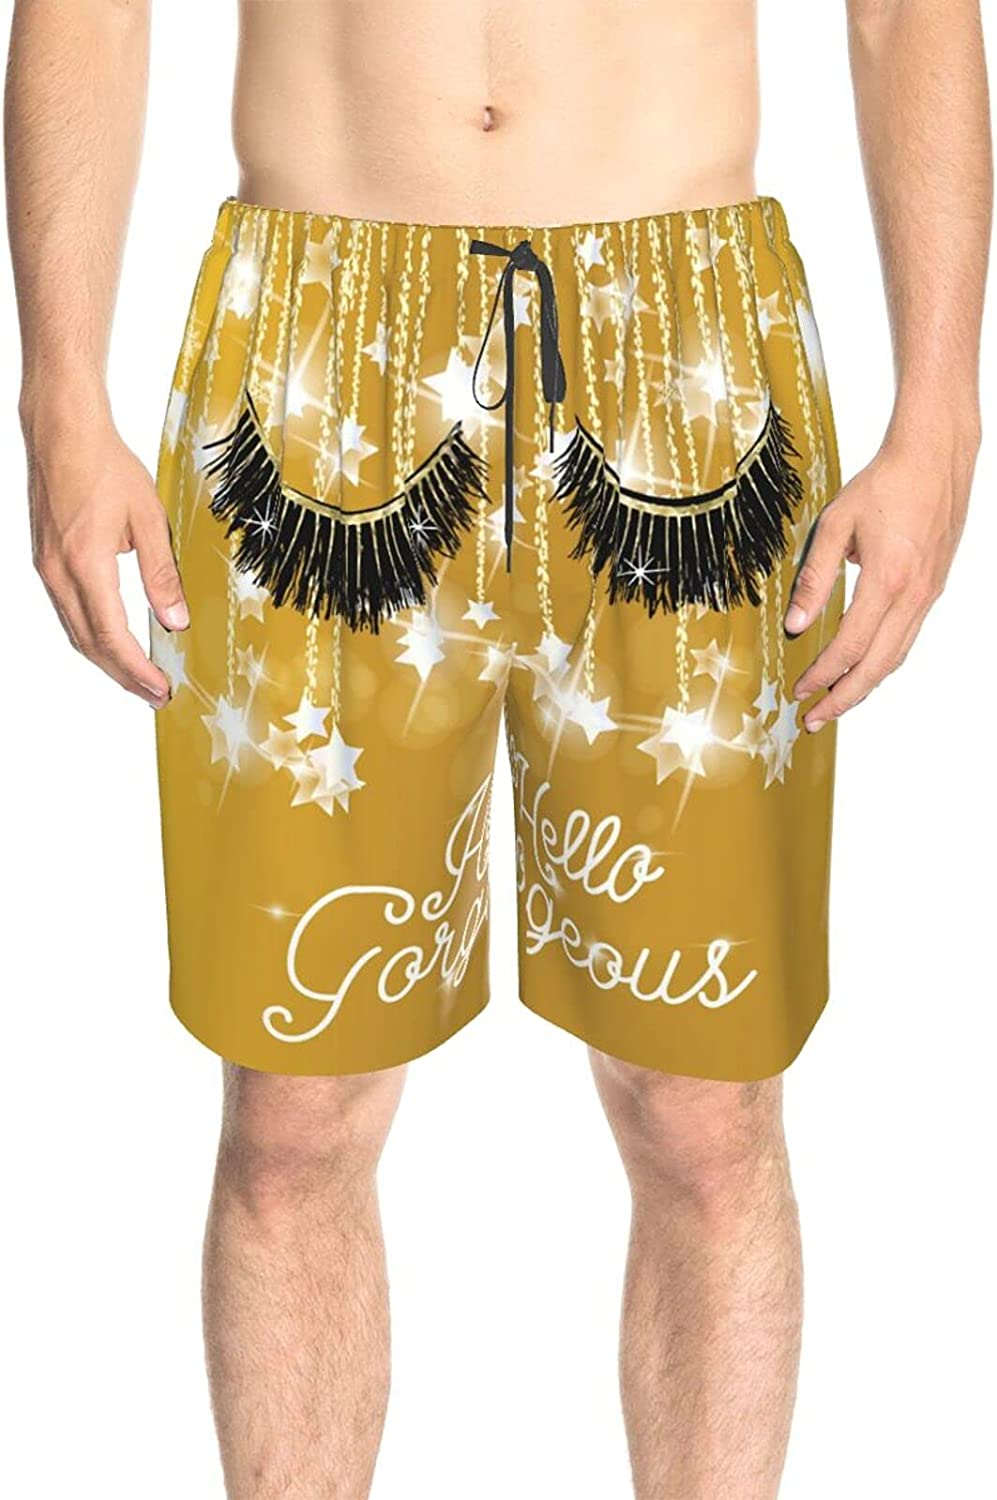 Men's Swim Shorts Hello Gorgeous Golden Sprinkle Swim Boardshorts Quick Dry Cool Summer Beach Shorts with Liner